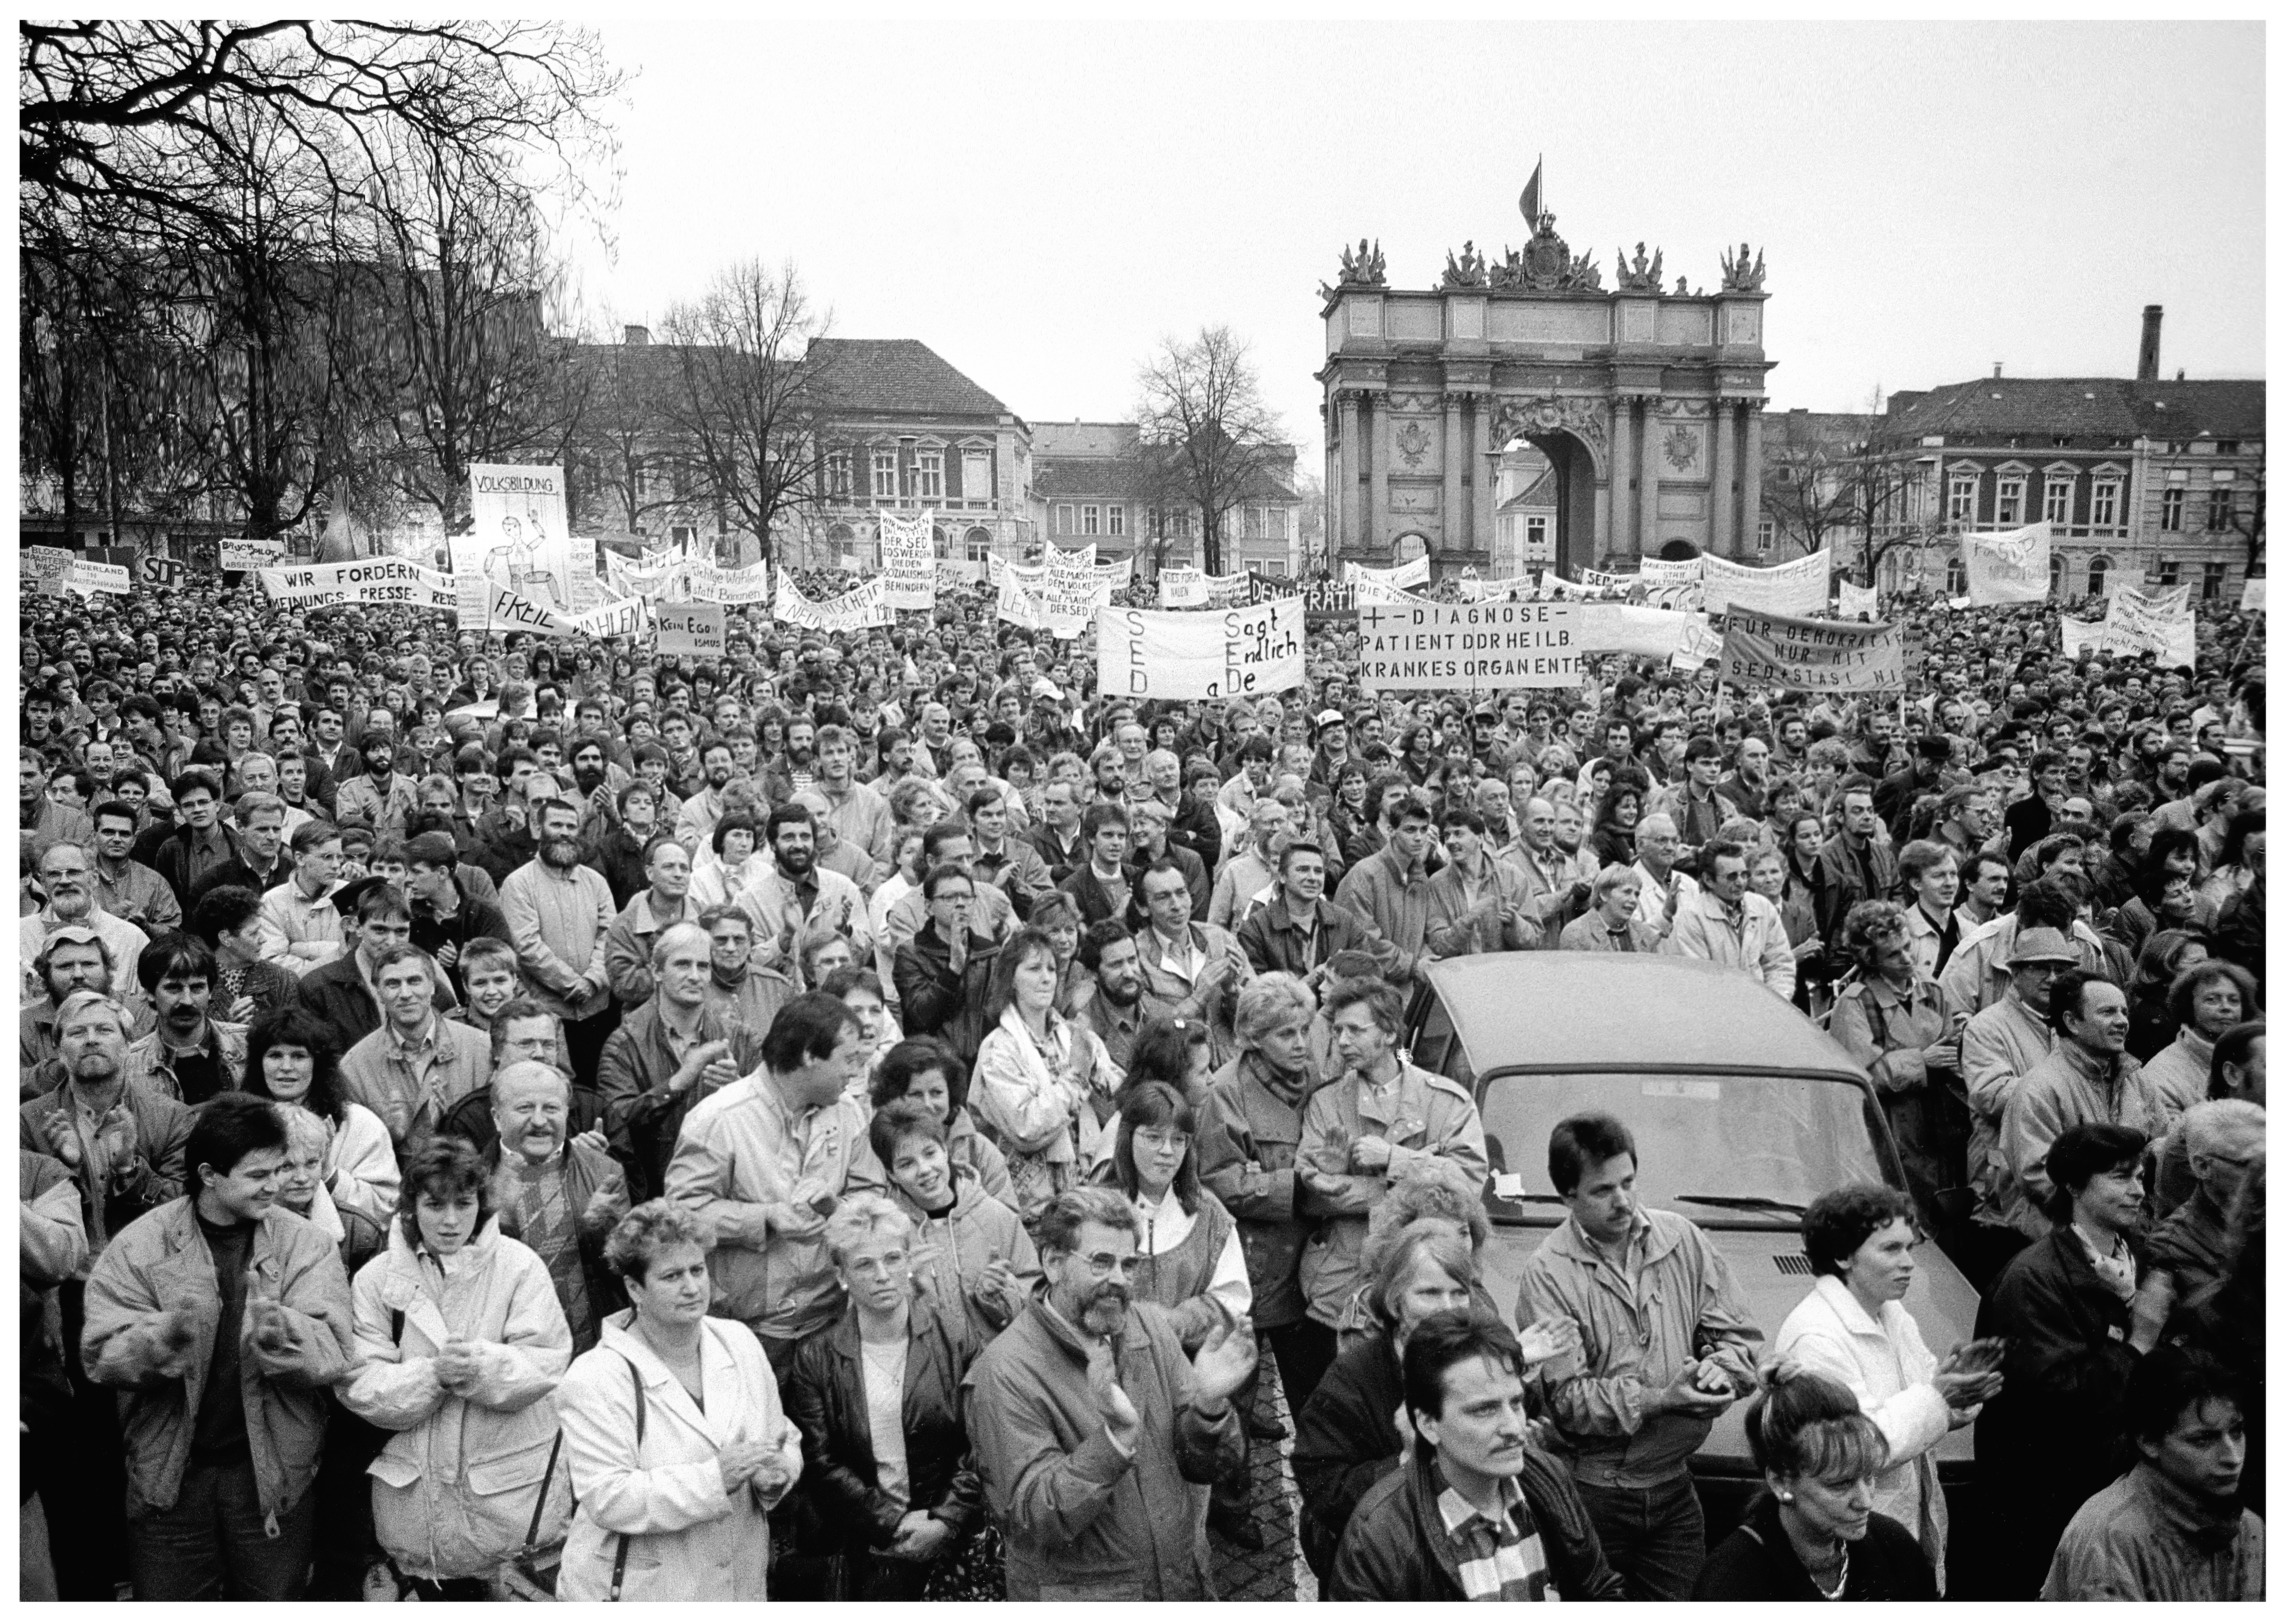 Kundgebung am 4.11.1989 auf dem Platz der Nationen (Luisenplatz). Foto: Klaus D. Fahlbusch